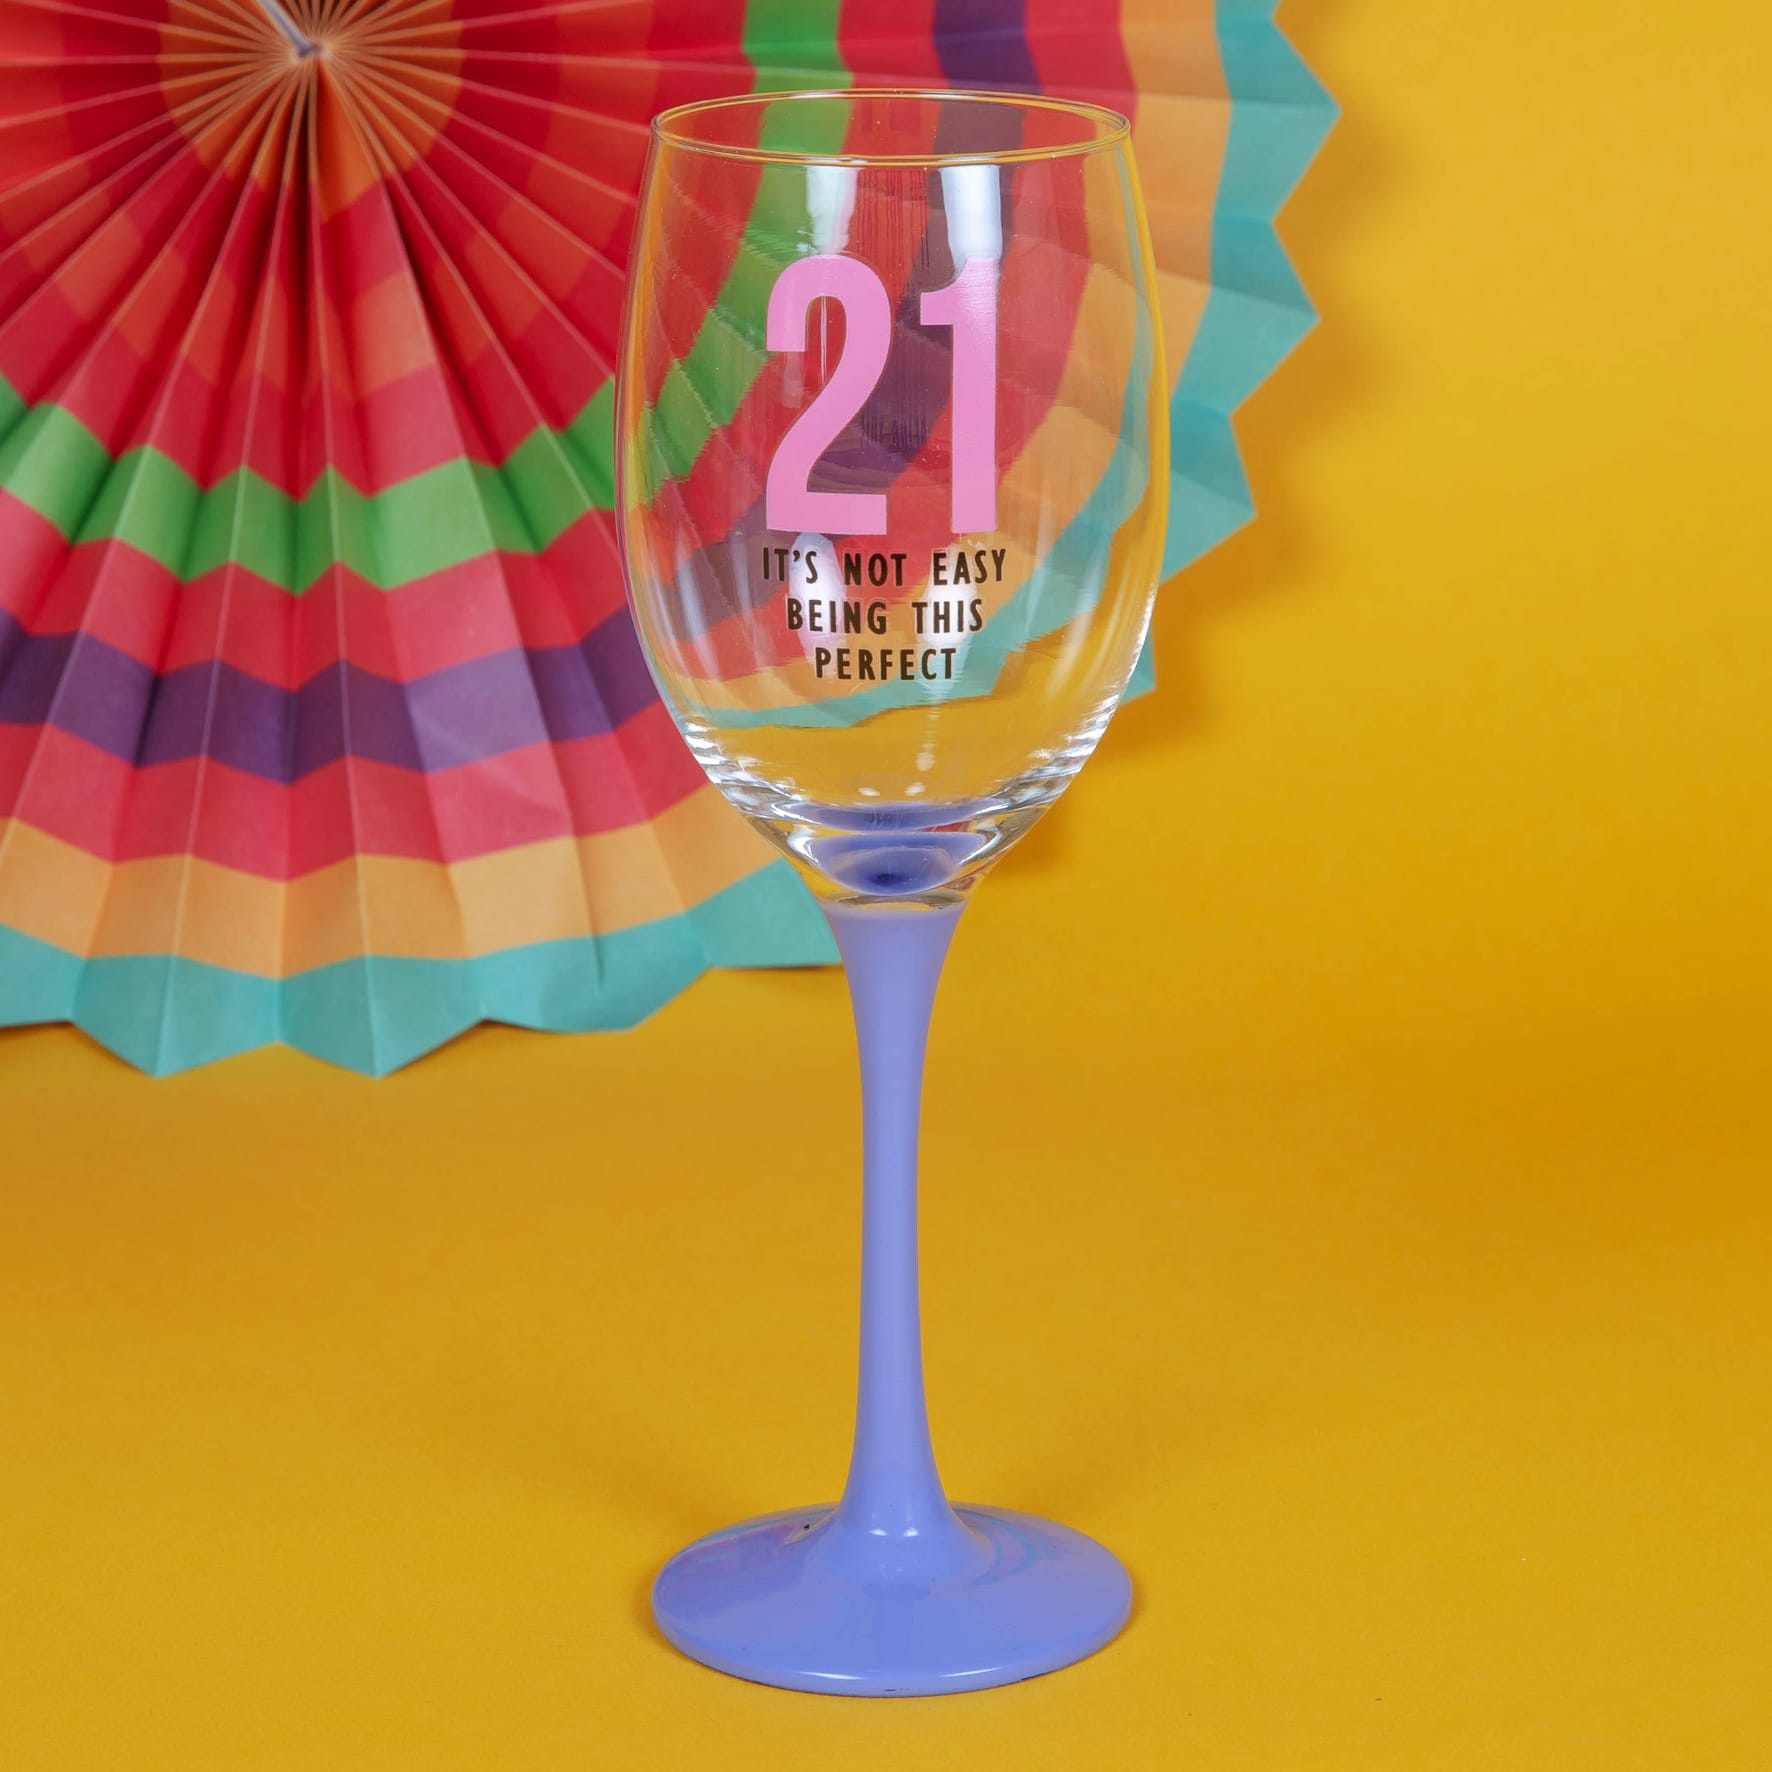 21st Wine Glass Not Easy Being Perfect